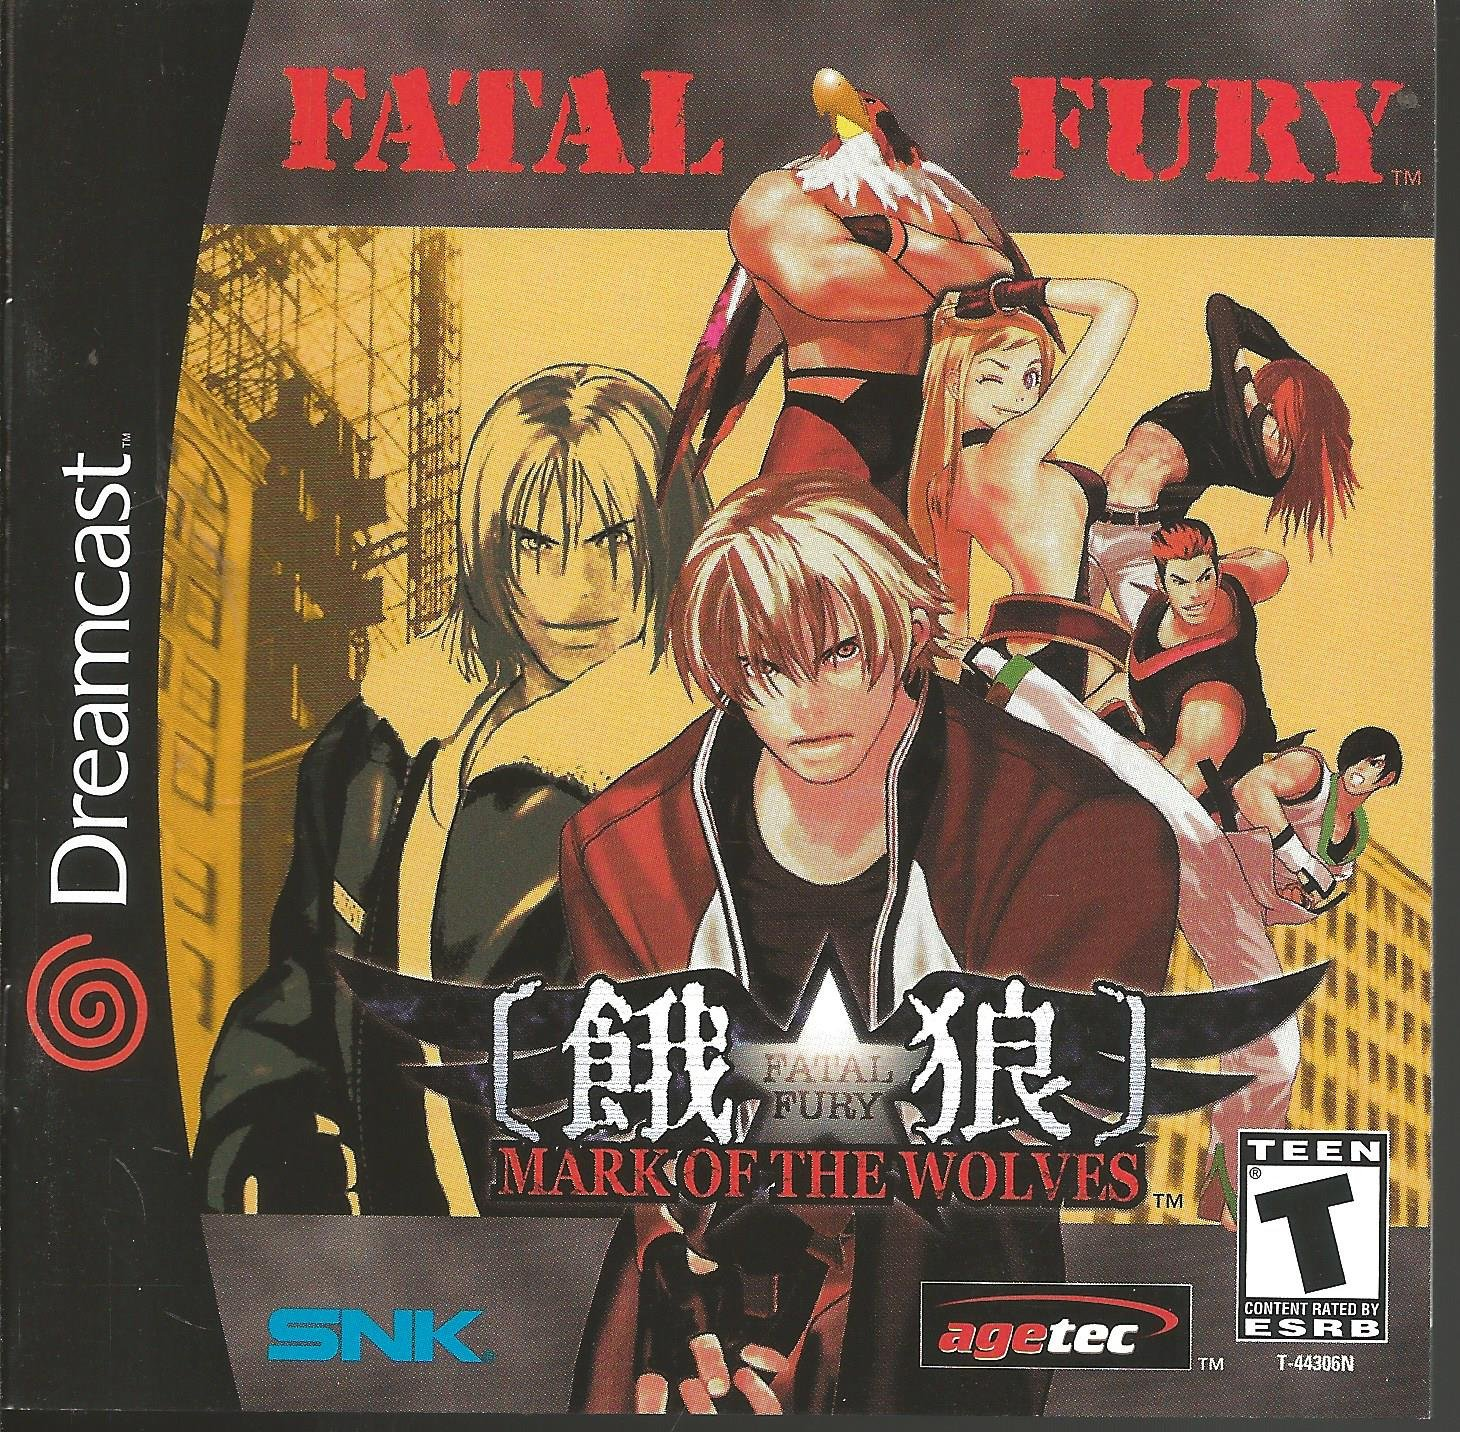 Fatal Fury Mark of the Wolves facts statistics